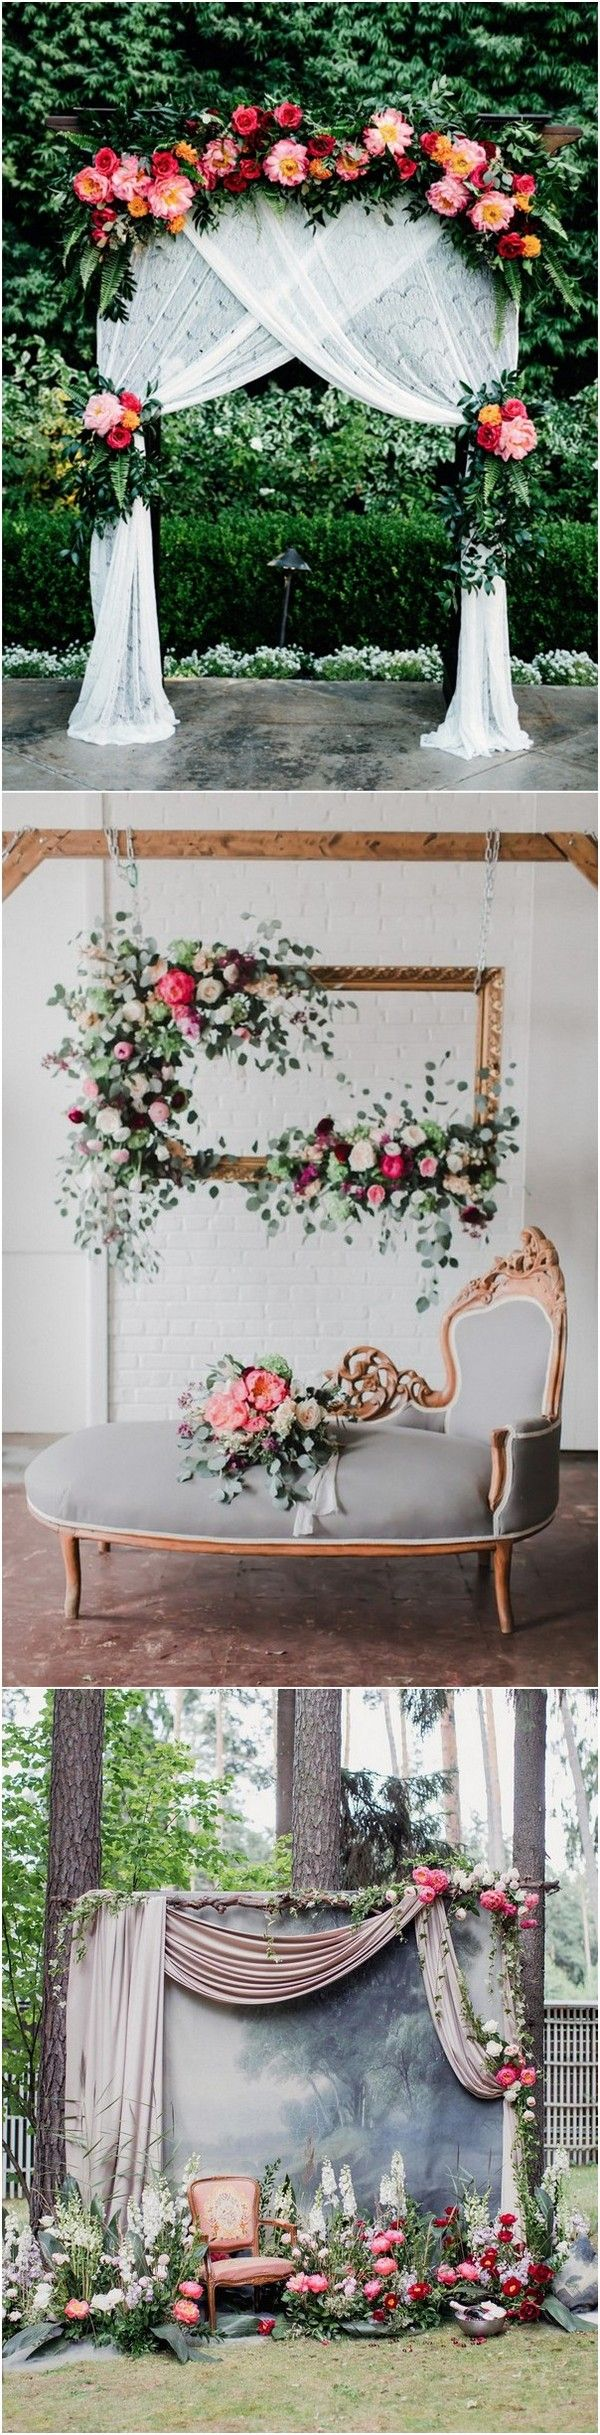 Trending 15 Hottest Wedding Backdrop Ideas For Your Ceremony Oh Best Day Ever Vintage Wedding Backdrop Curtain Backdrop Wedding Wedding Decorations